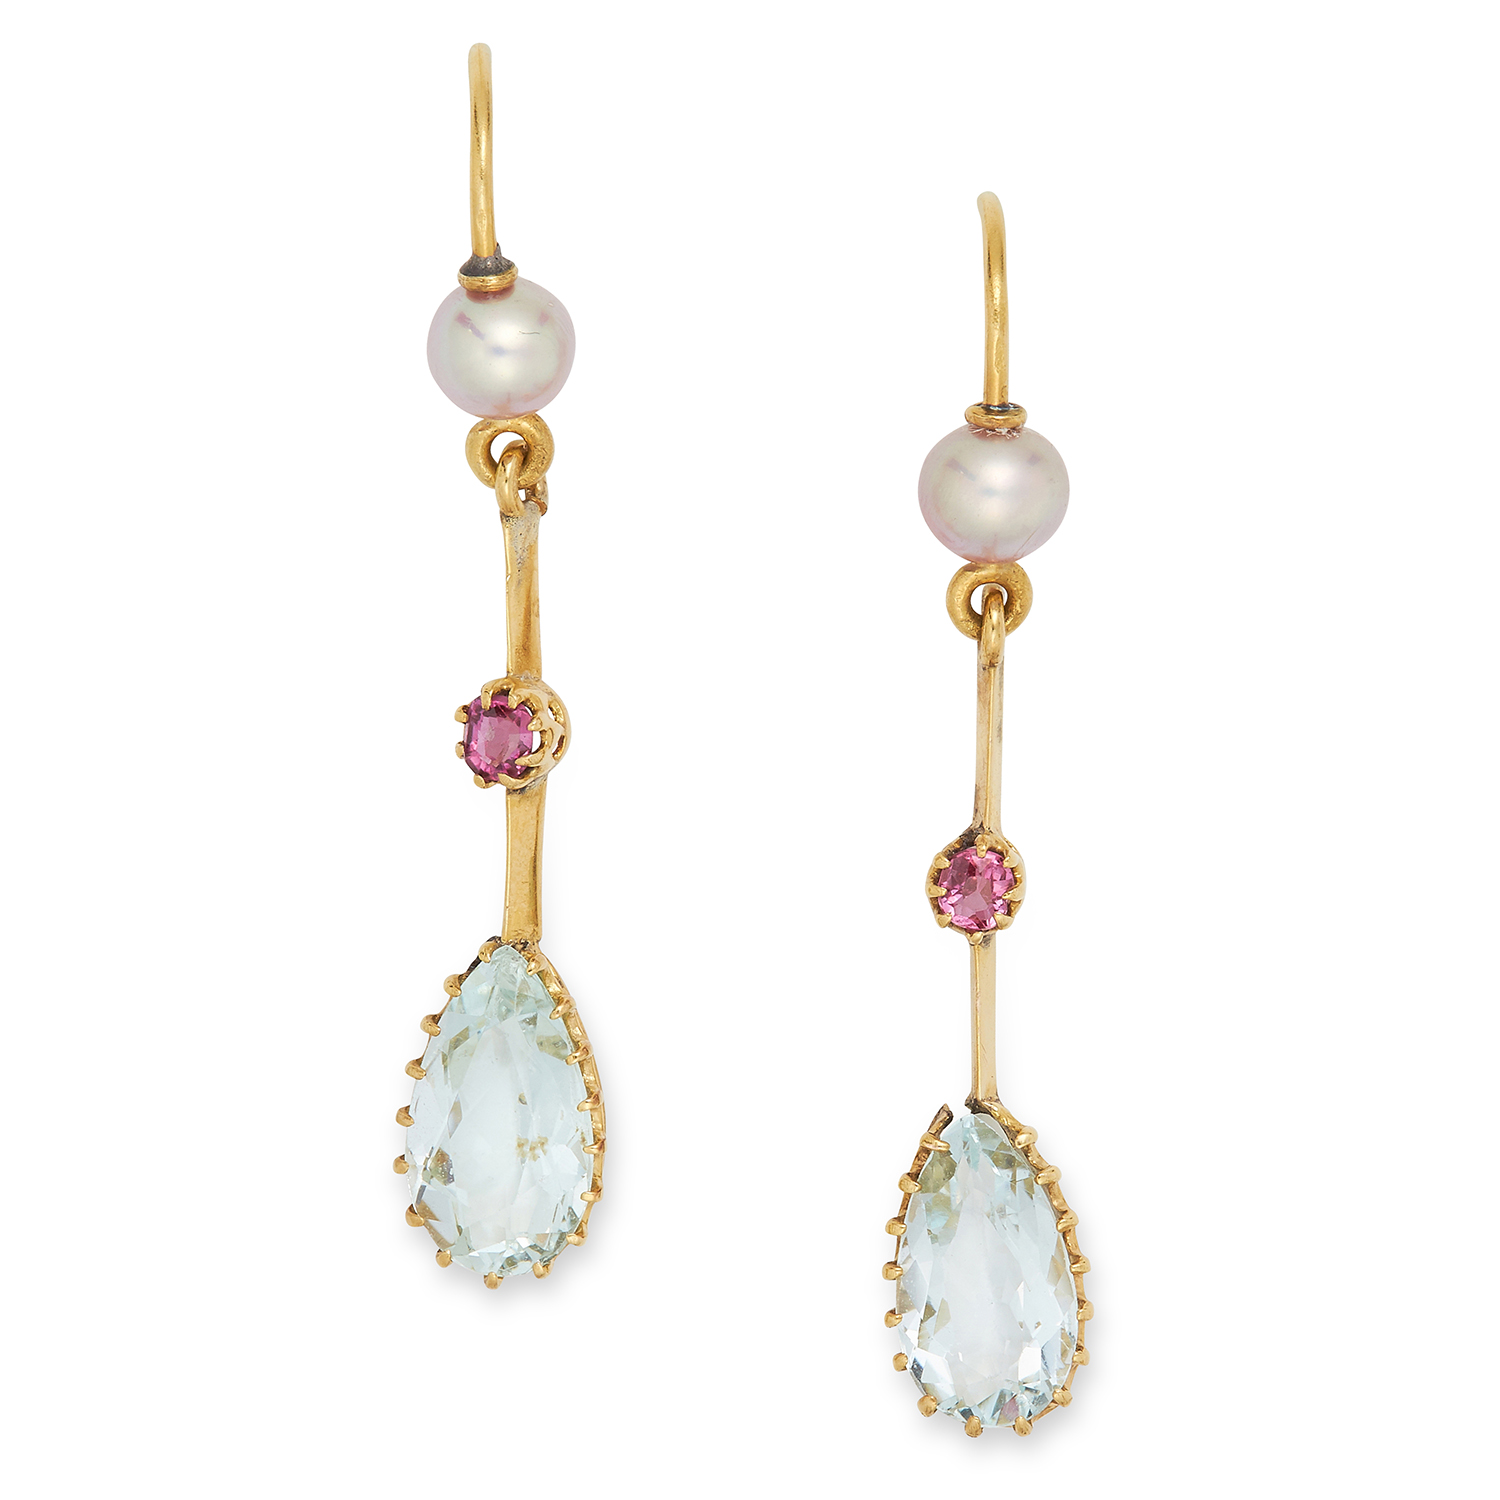 Los 17 - ANTIQUE AQUAMARINE, RUBY AND PEARL EARRINGS each comprising of a pearl, round cut ruby and a pear